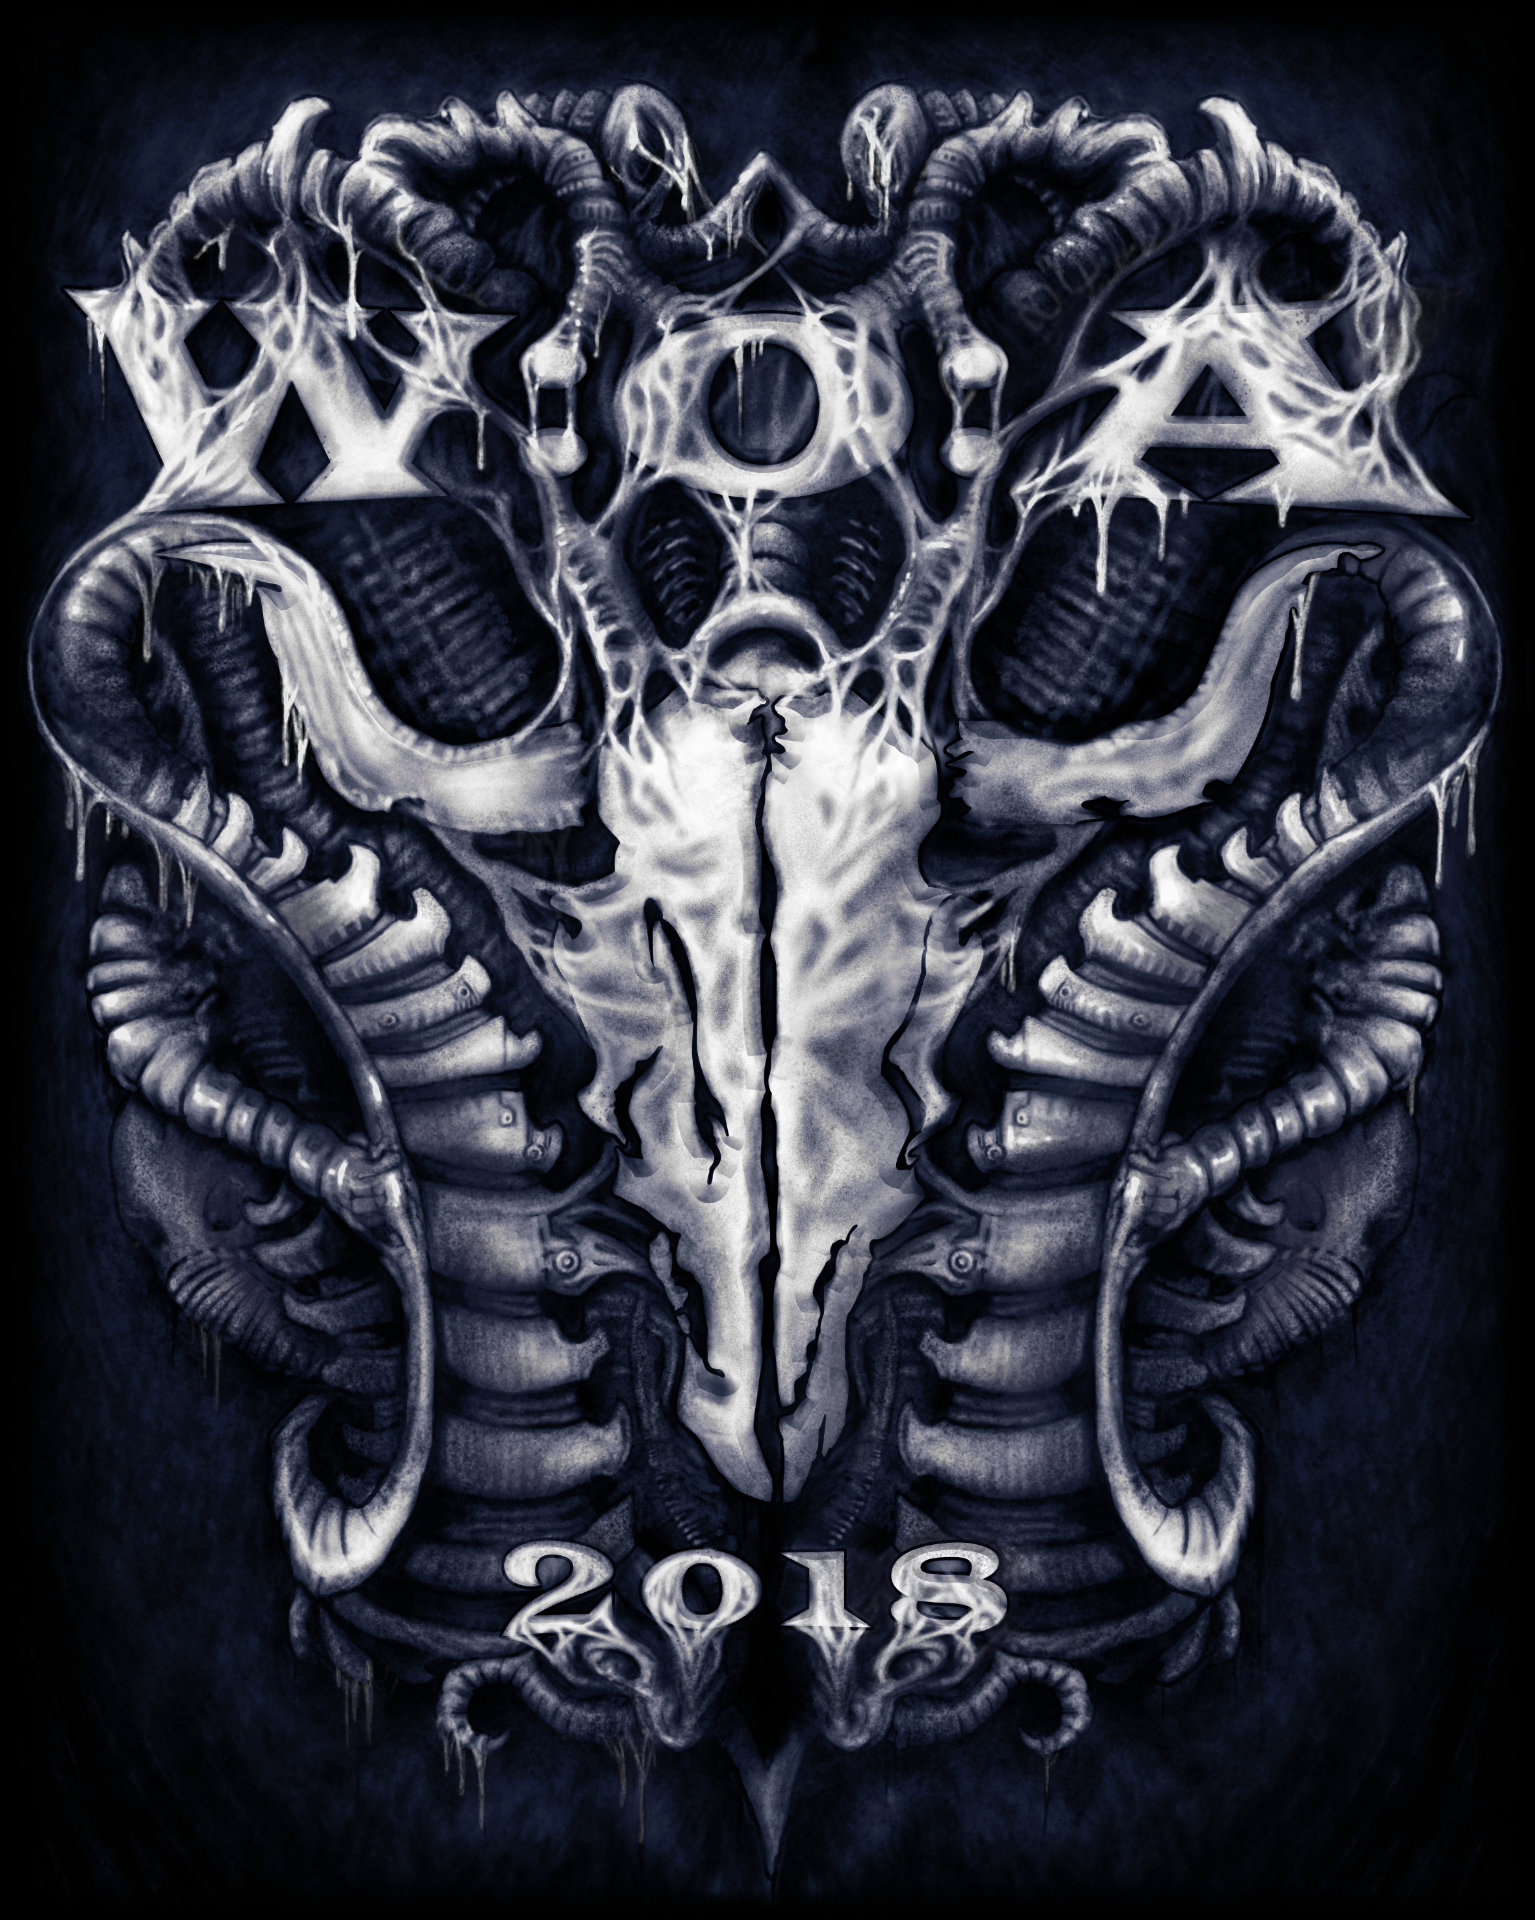 Wacken Open Air 2018 - Giger Shirt